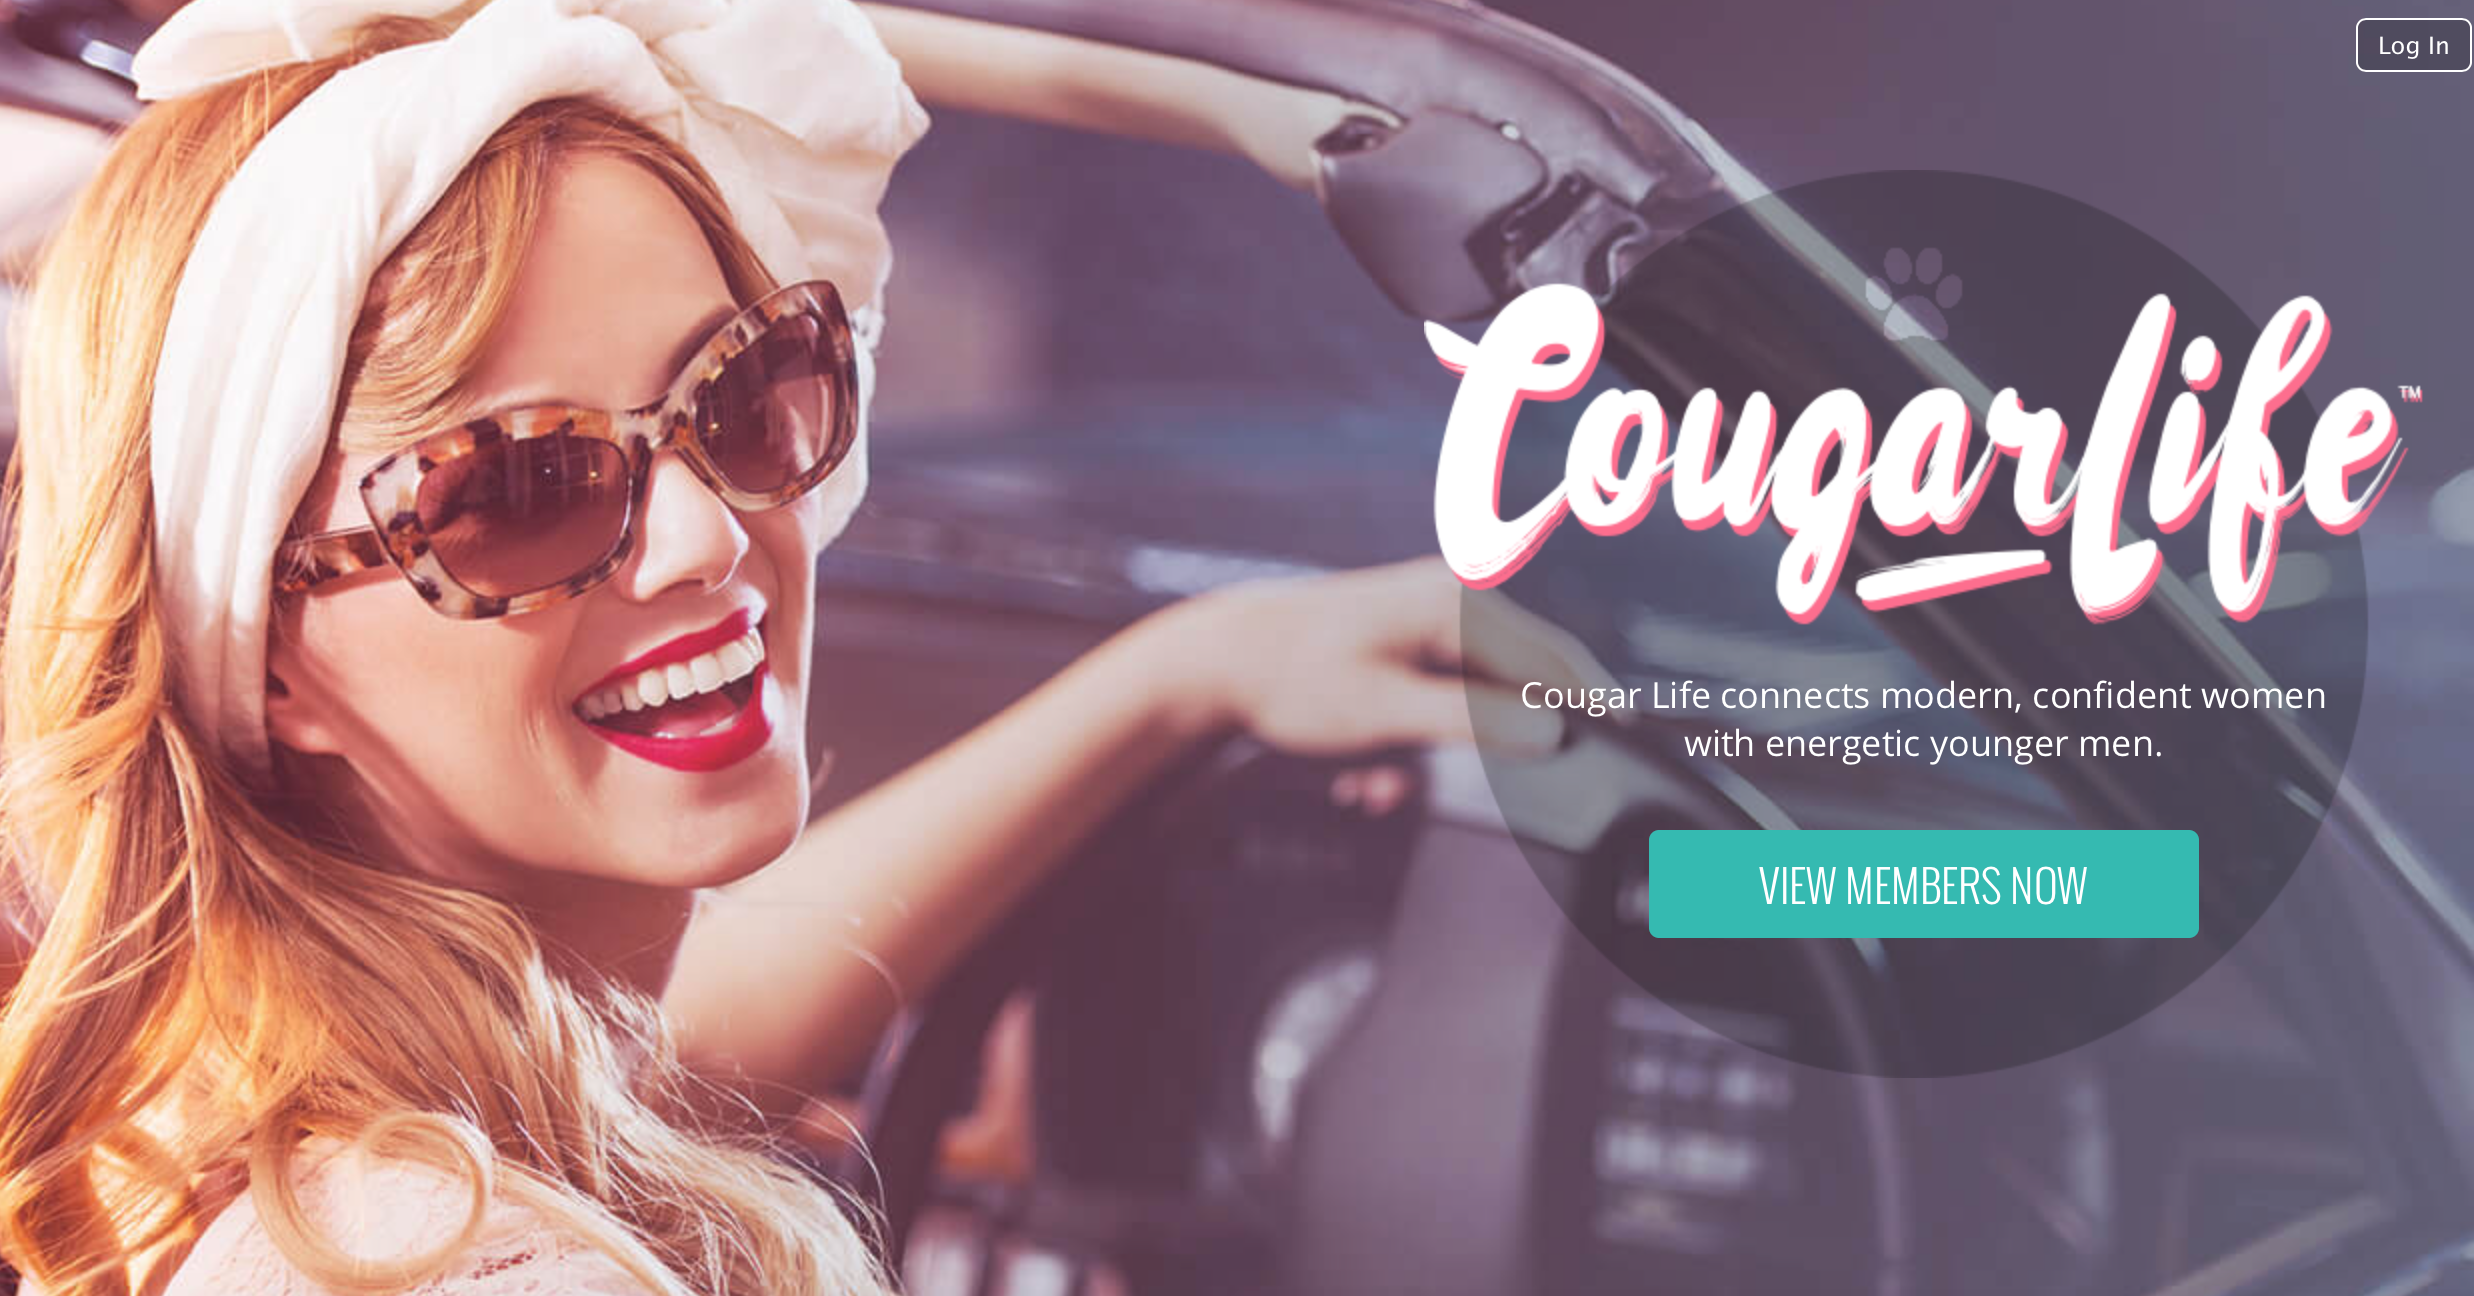 oban cougars dating site This is the best cougar dating sites & apps review you will find we tested, reviewed and ranked every popular cougar dating site & app for your success.